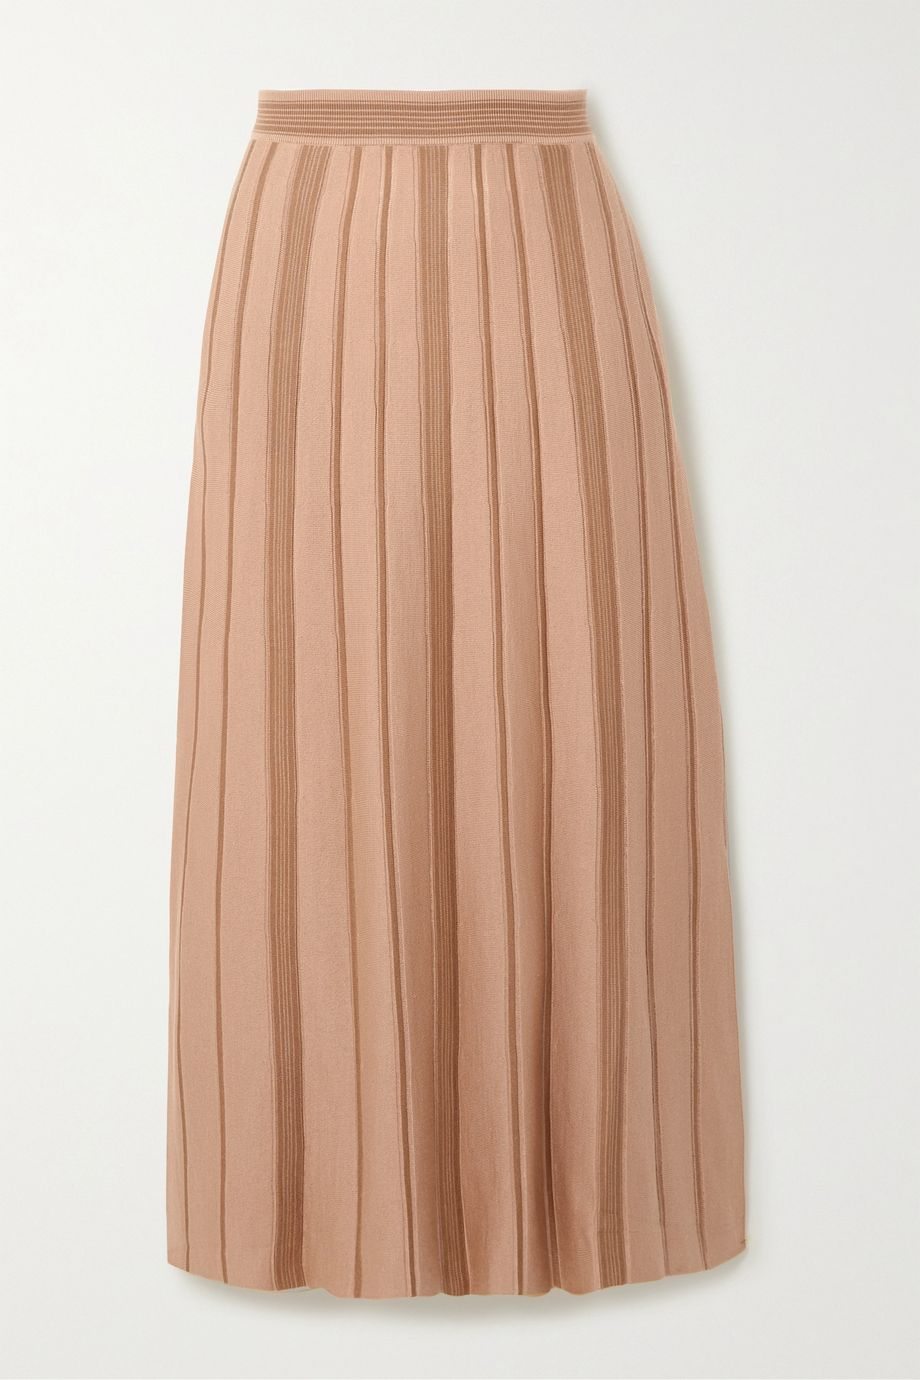 Loro Piana Essaouira cashmere and silk-blend midi skirt